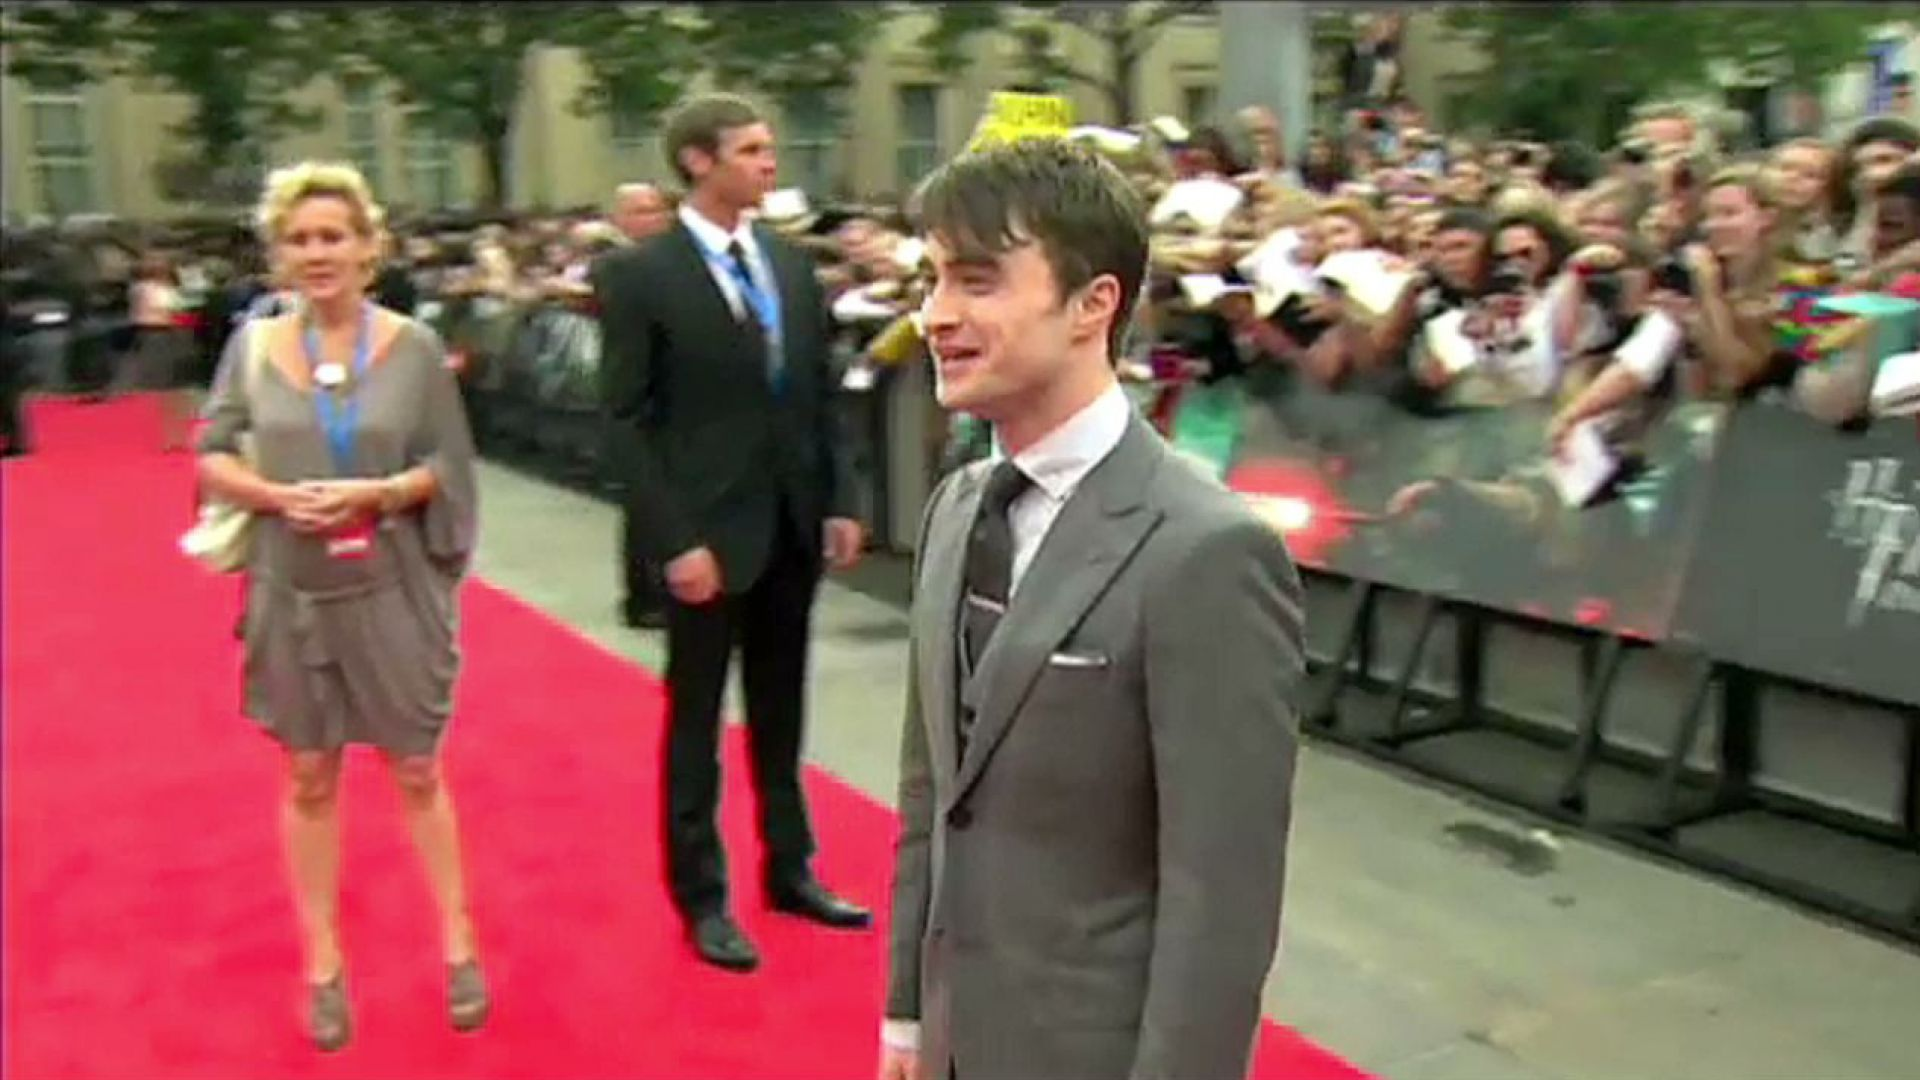 Harry Potter and the Deathly Hallows Part 2 World Premiere, Trafalgar Square